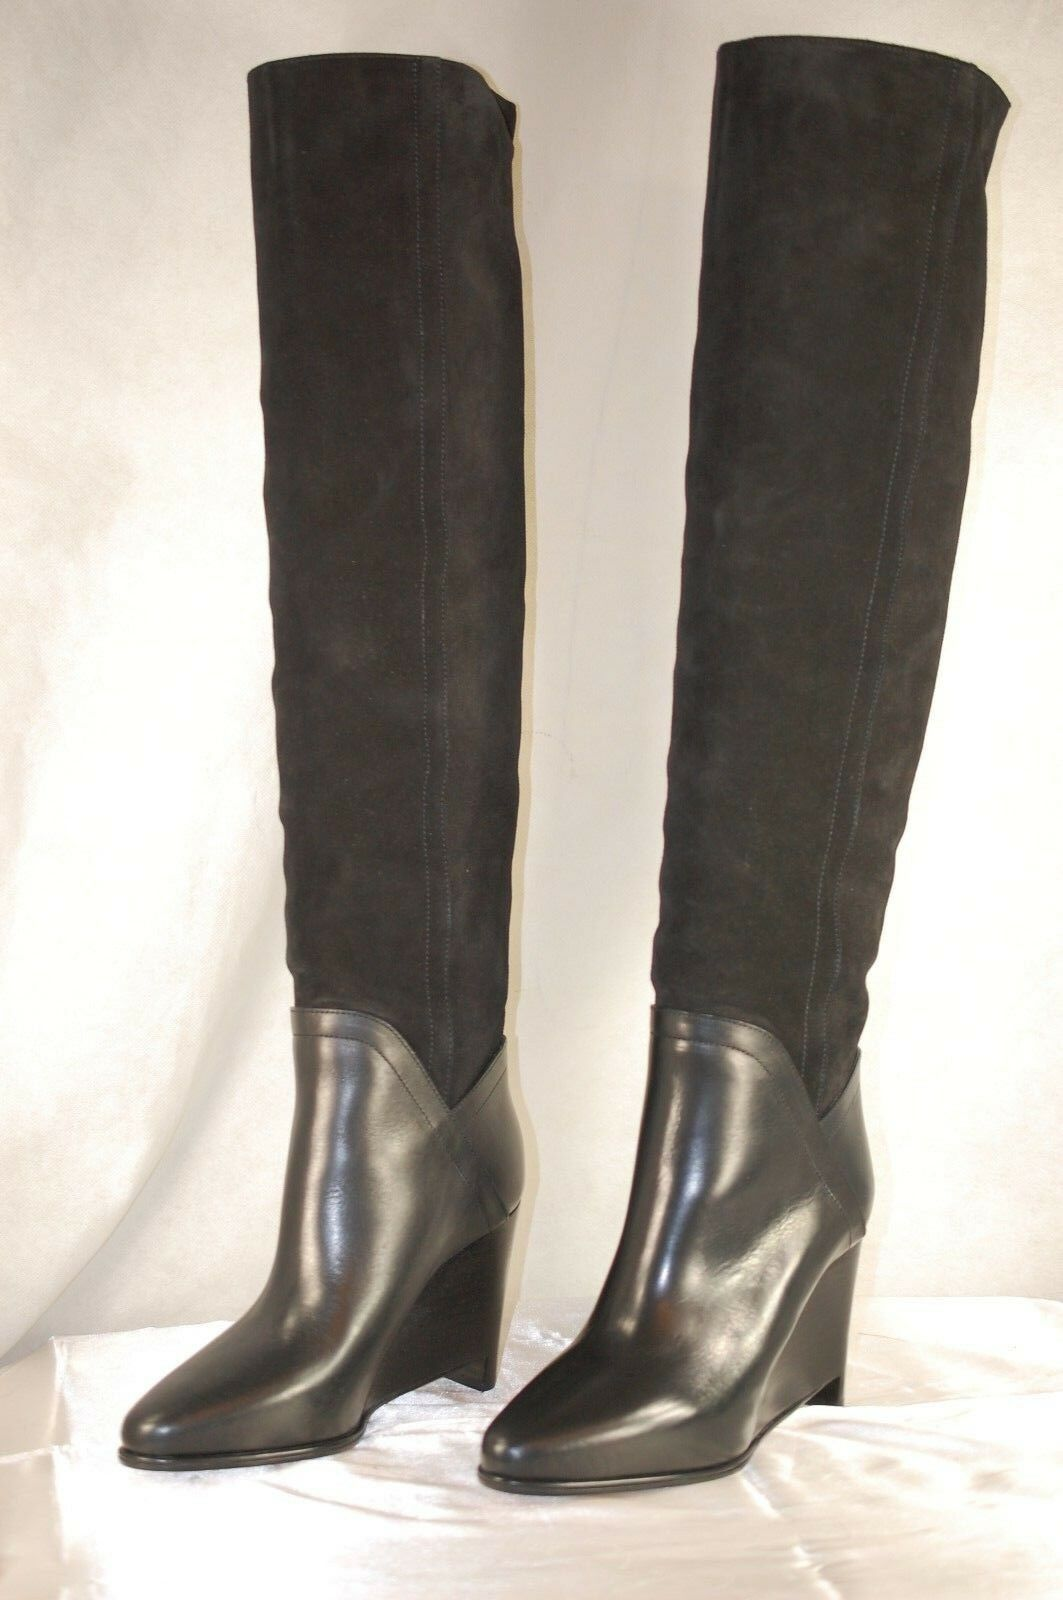 MAISON MARTIN MARGIELA WEDGE BLACK SUEDE SLOUCH OVER THE KNEE BOOTS US 10